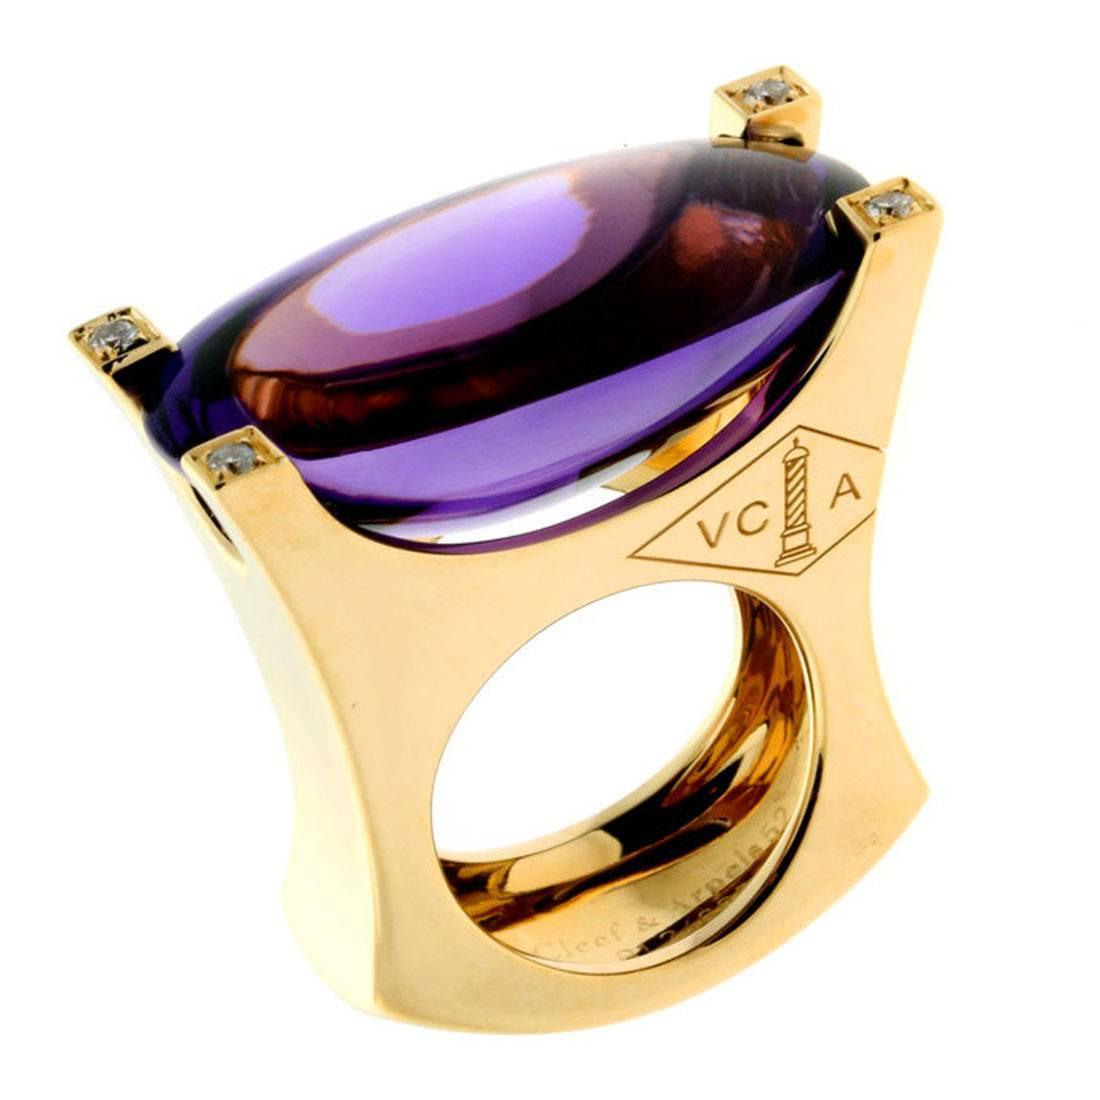 Van cleef amp arpels vca 18k yellow gold ruby cabochon amp diamond - Van Cleef Arpels Amethyst Diamond Gold Ring